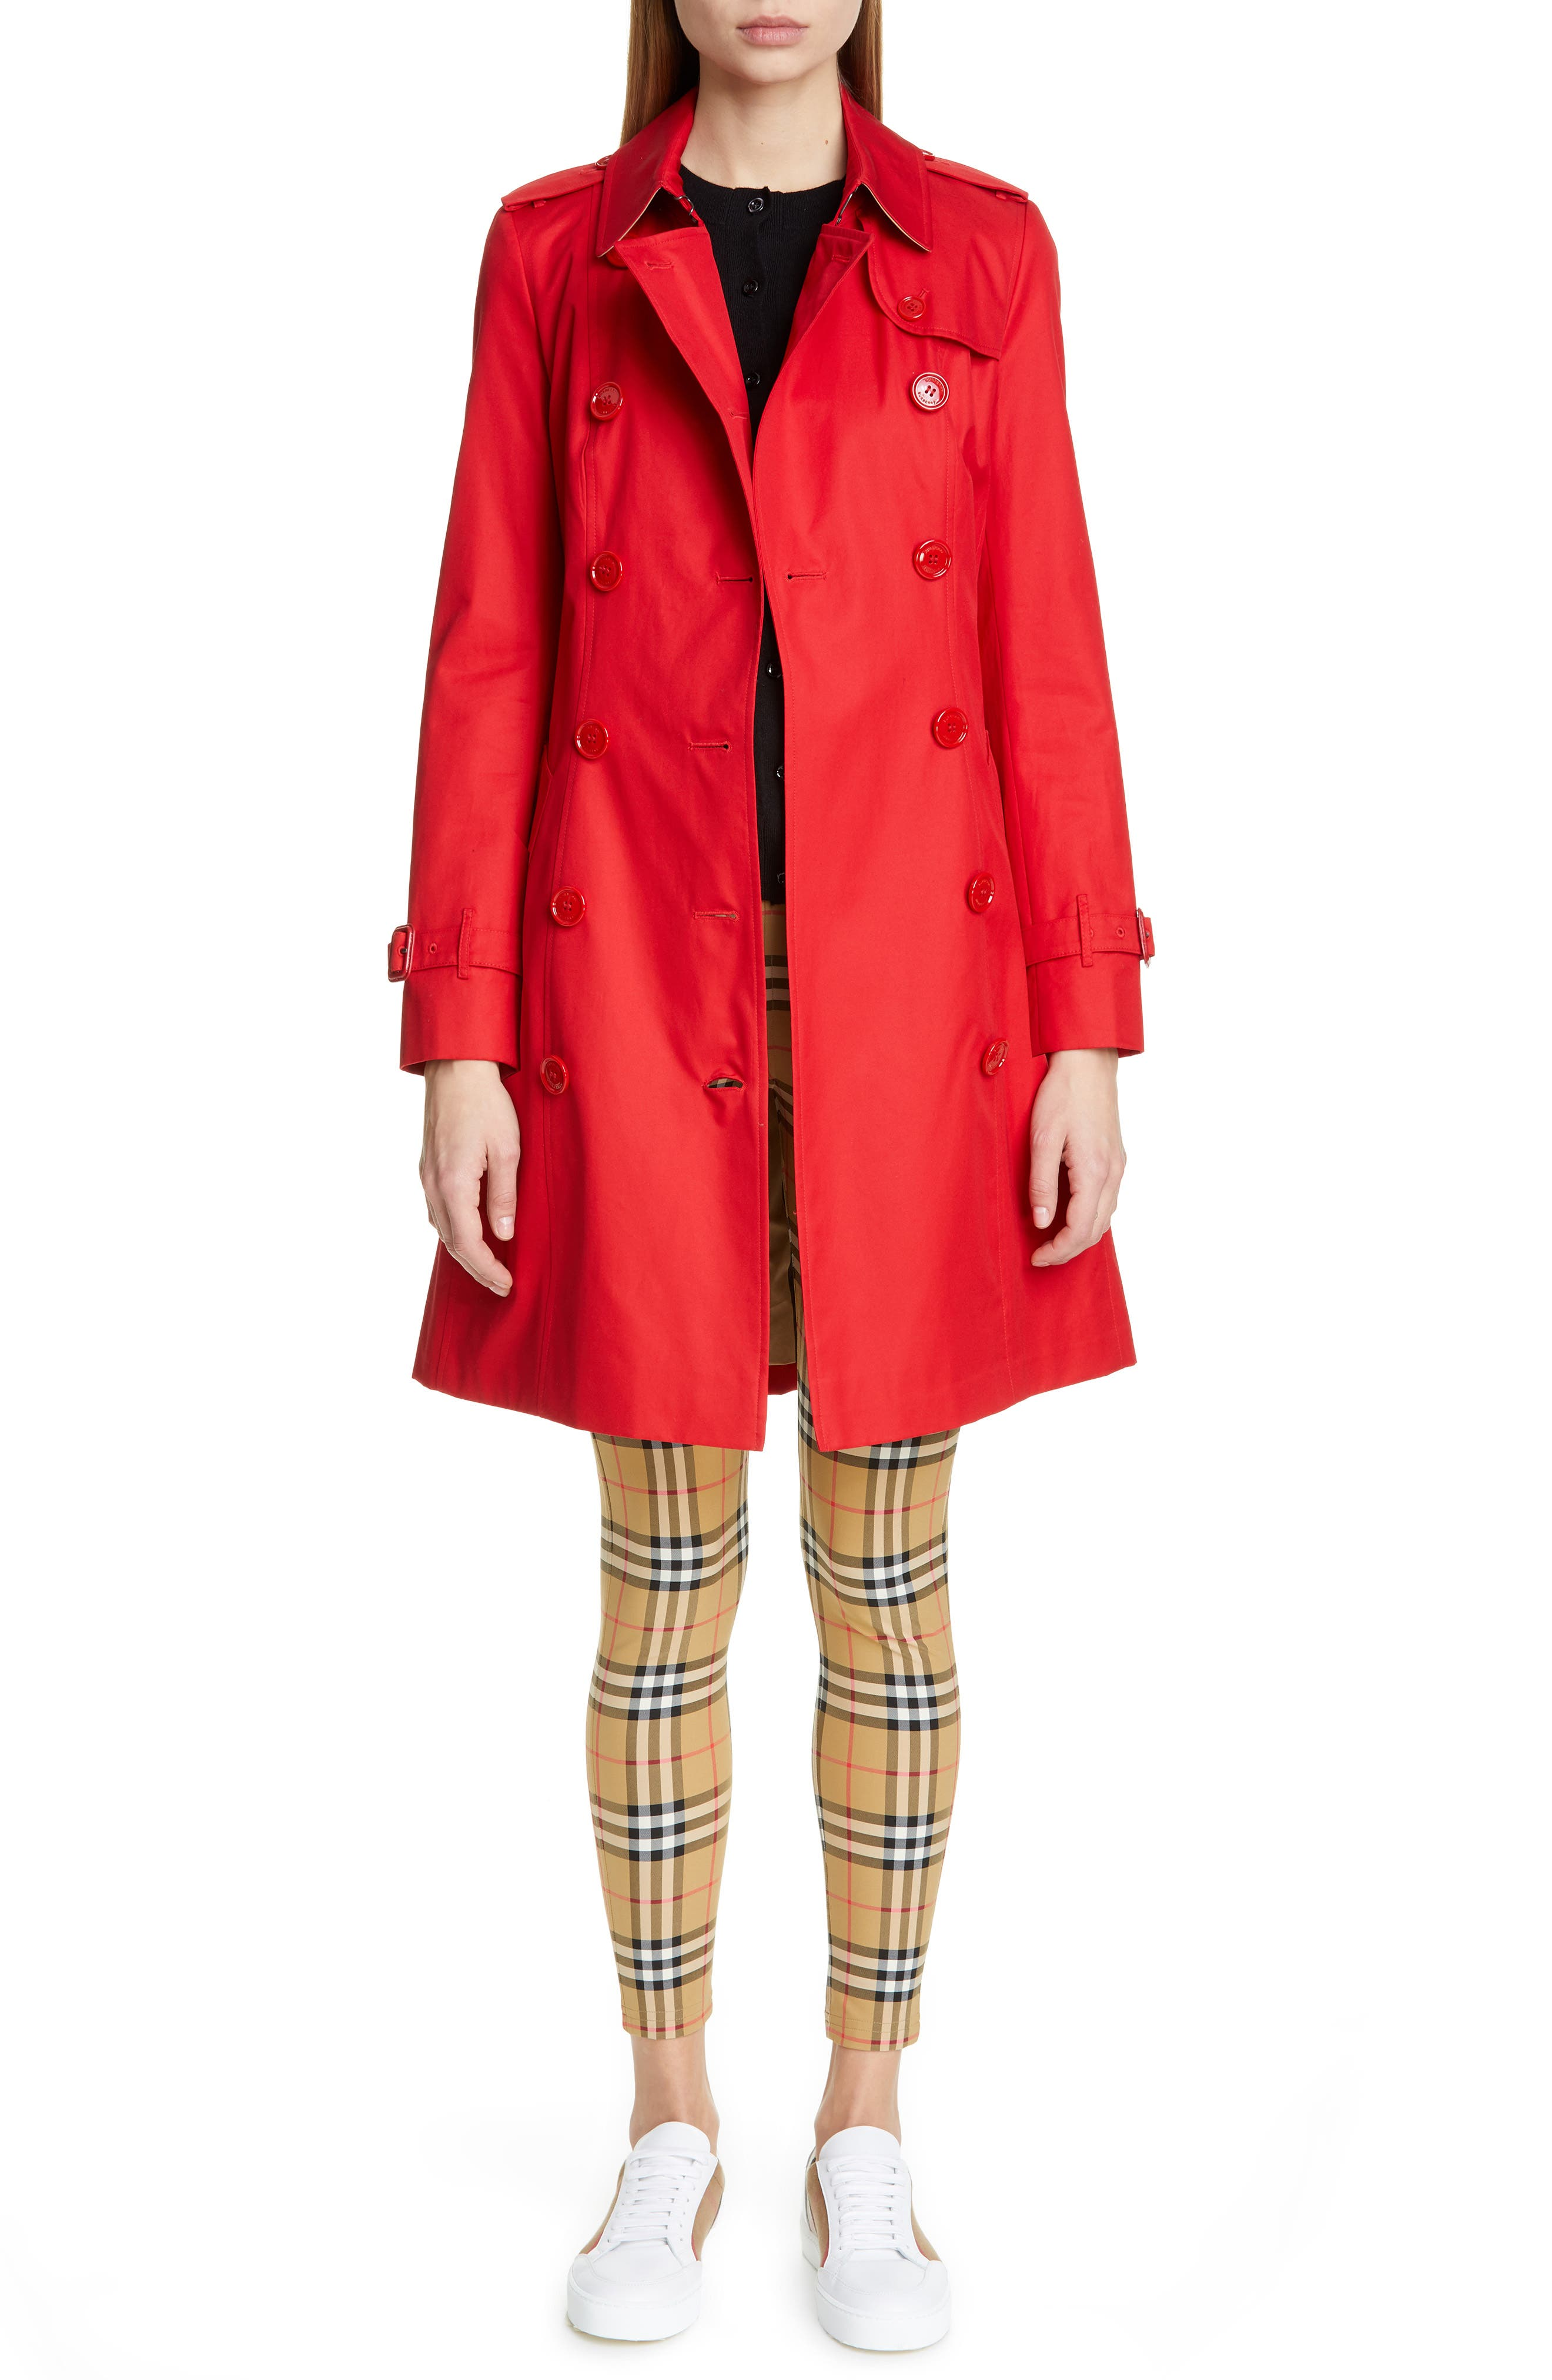 BURBERRY, The Chelsea Cotton Gabardine Trench Coat, Alternate thumbnail 8, color, BRIGHT RED